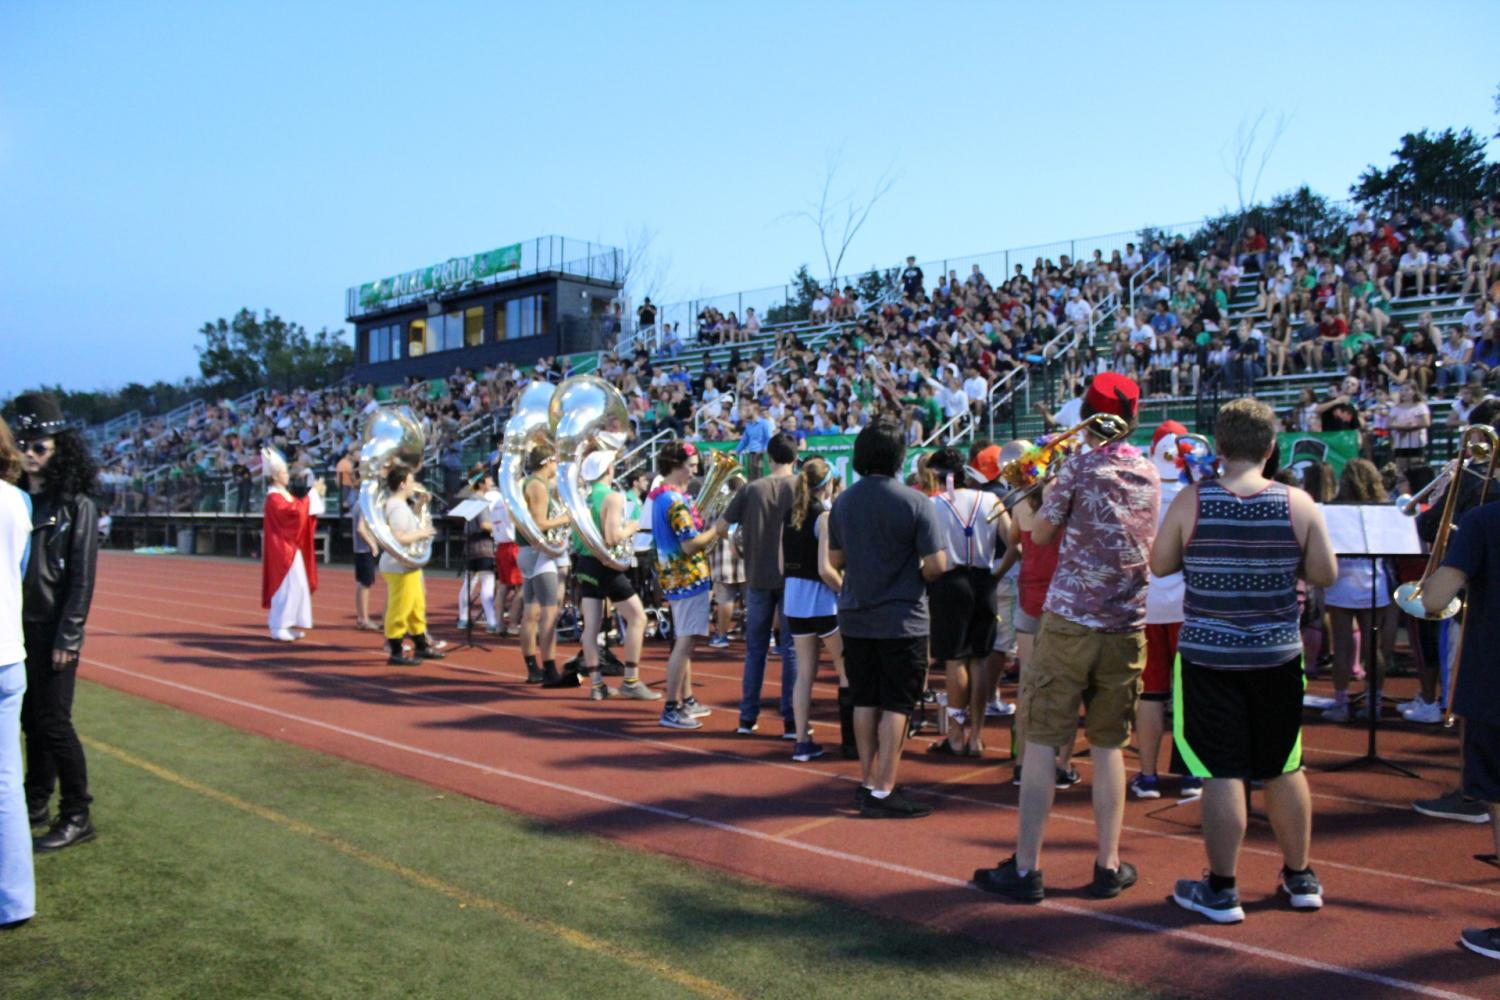 The marching band pumps up the crowd with